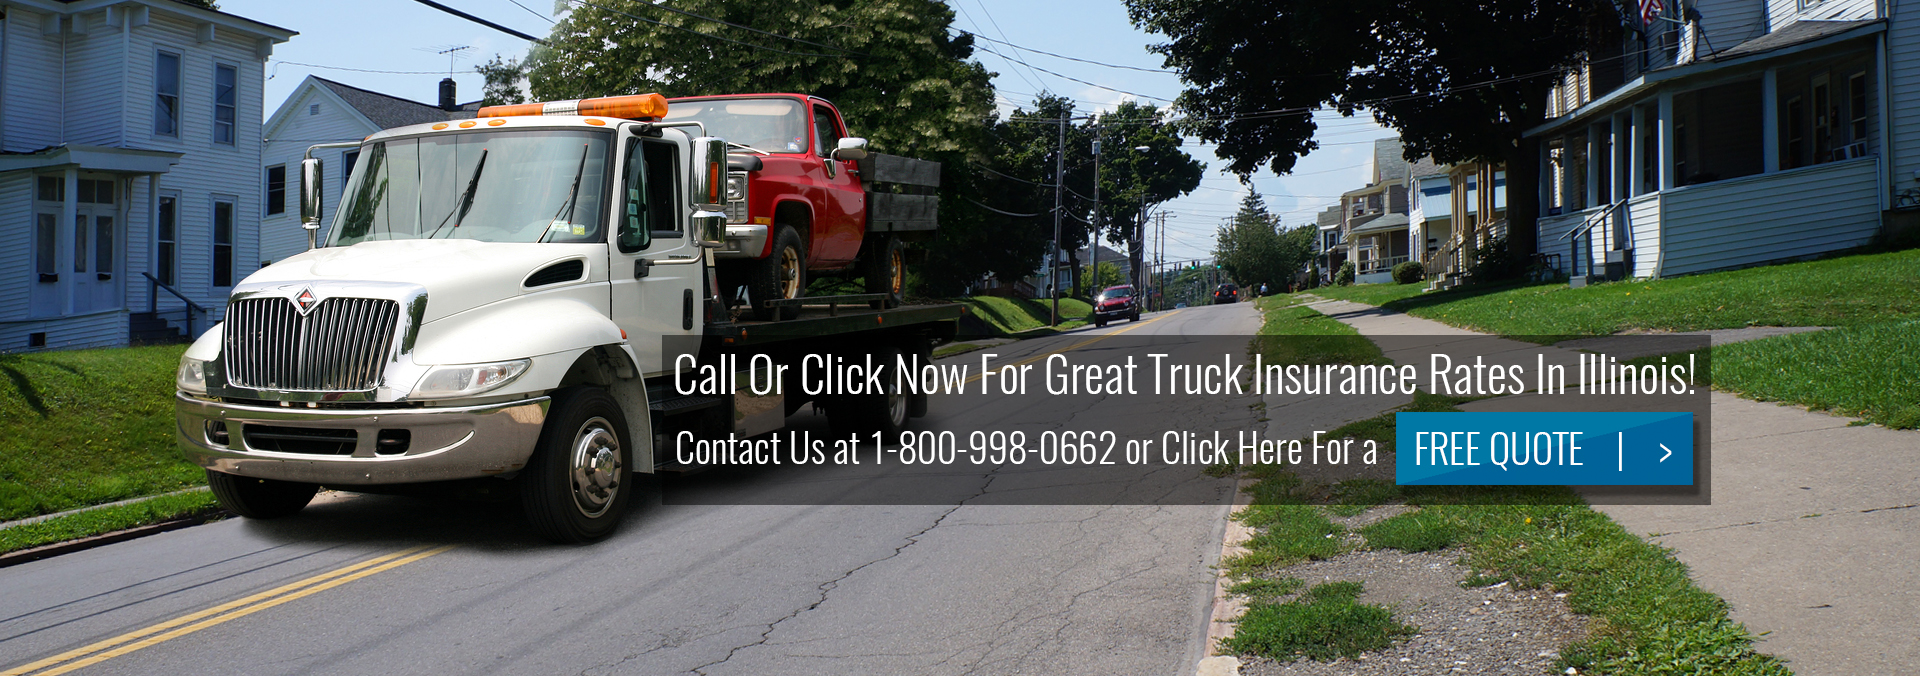 Pathway Truck Insurance Illinois Slider Tow